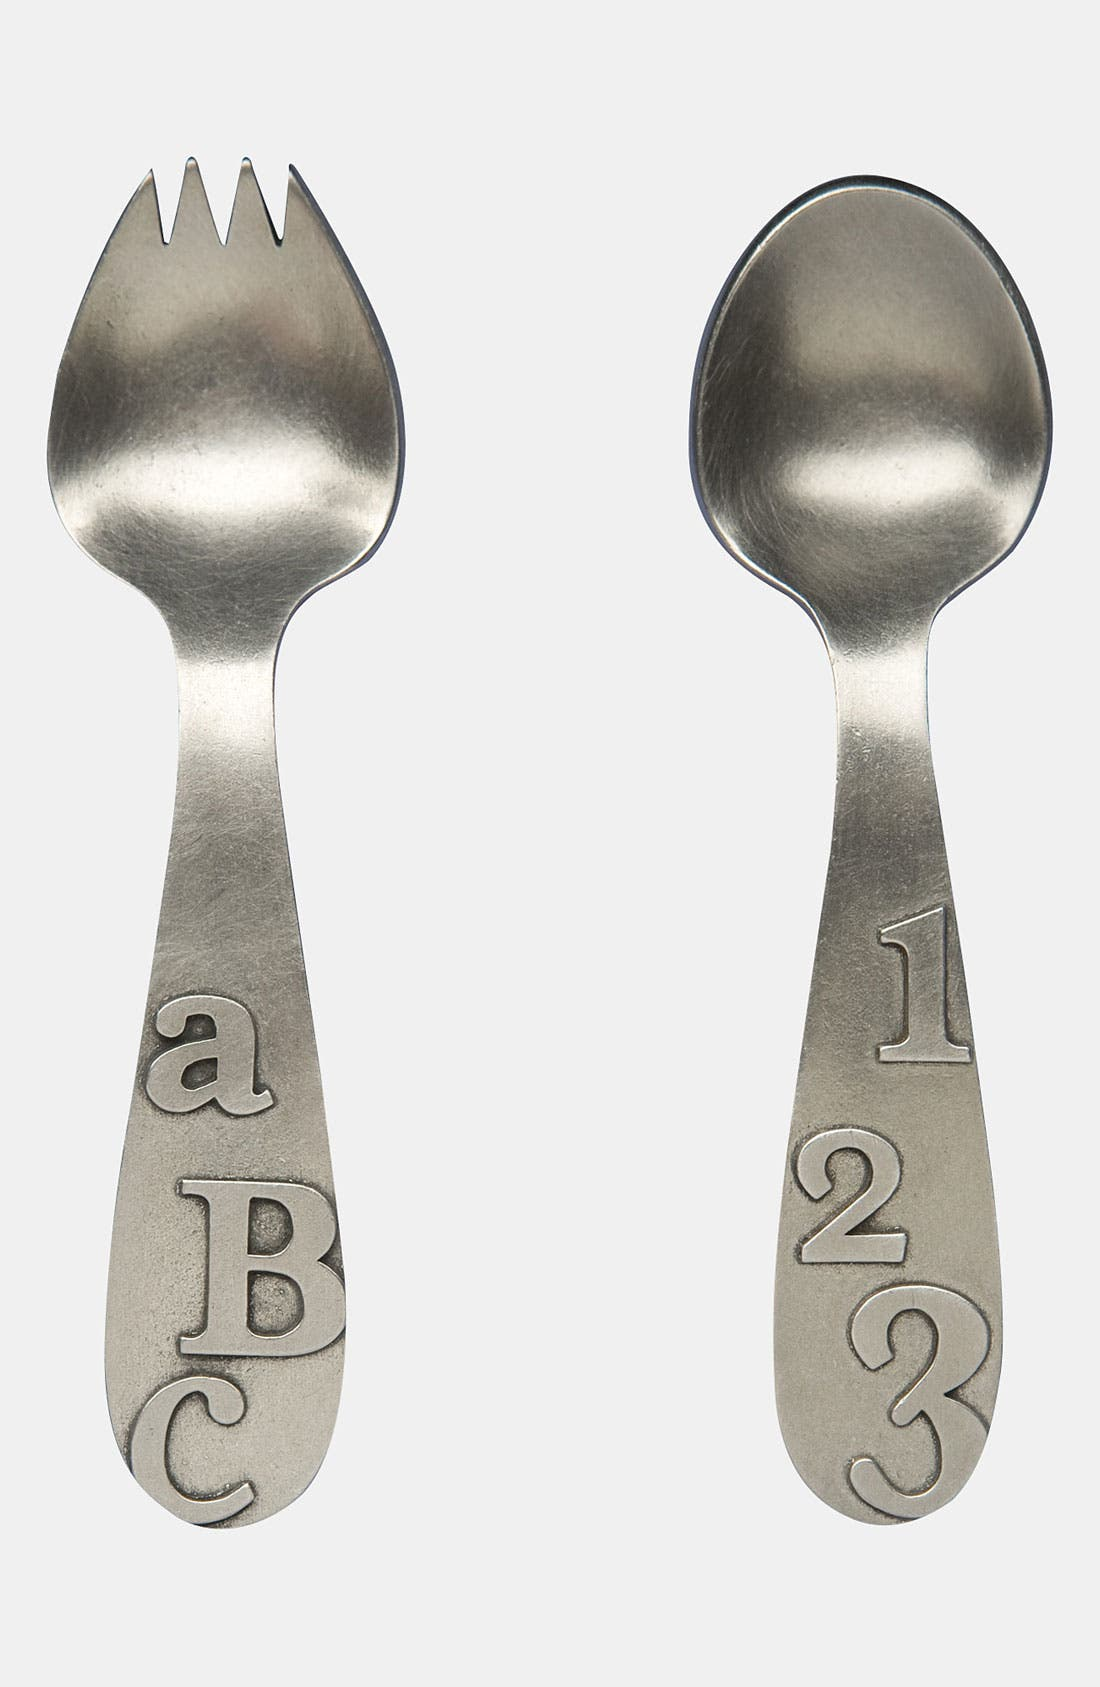 Main Image - Beehive Kitchenware 'ABC/123' Keepsake Spoon & Fork Set